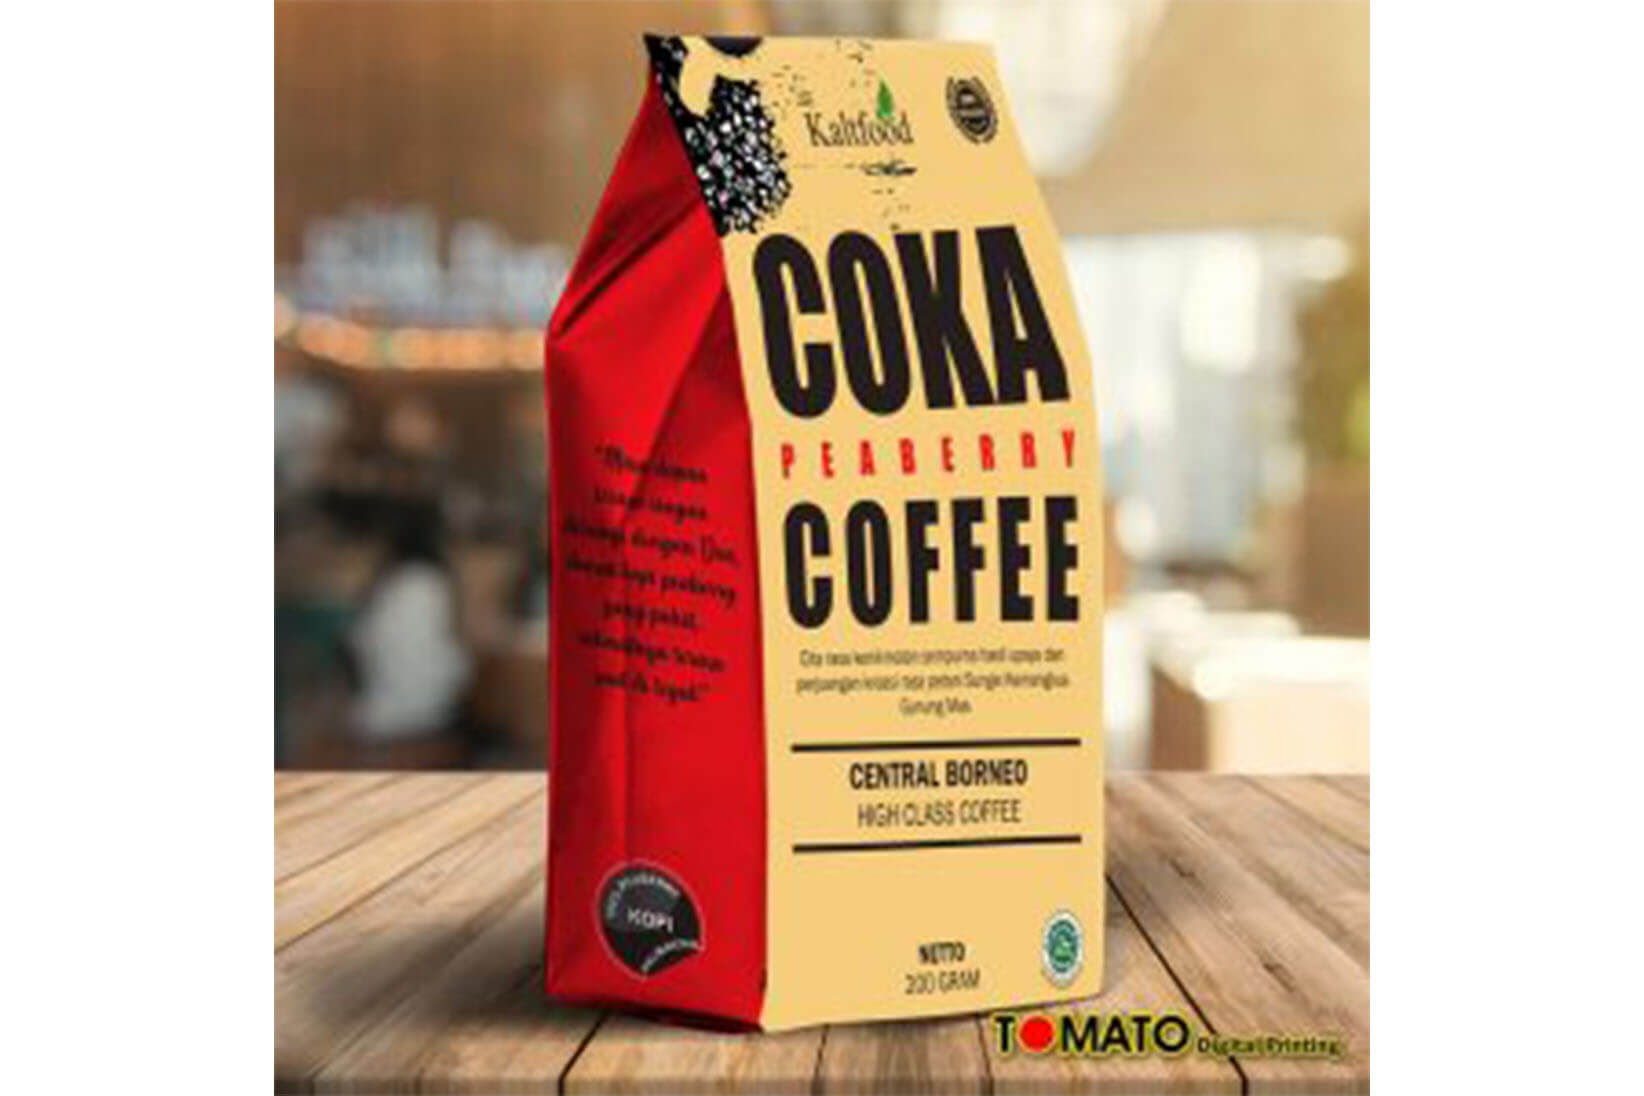 coka-peaberry-coffee-kaltfood